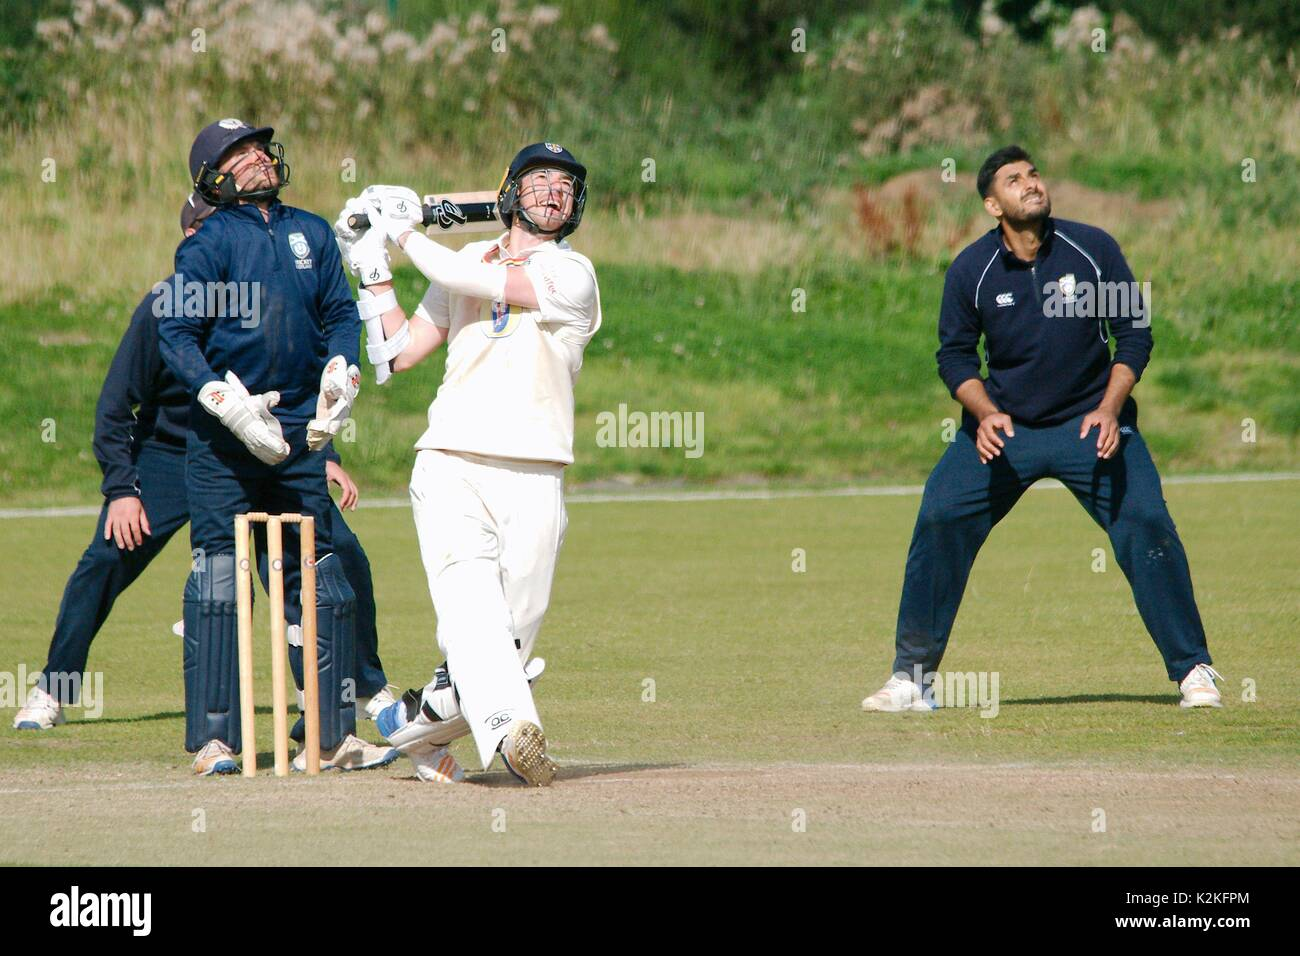 Burnopfield, UK. 31st Aug, 2017. James Weighell, batting for Durham CCC 2nd XI against Scotland A at Burnopfield Cricket Club, watches the ball which is caught by a Scottish fielder. Credit: Colin Edwards/Alamy Live News - Stock Image